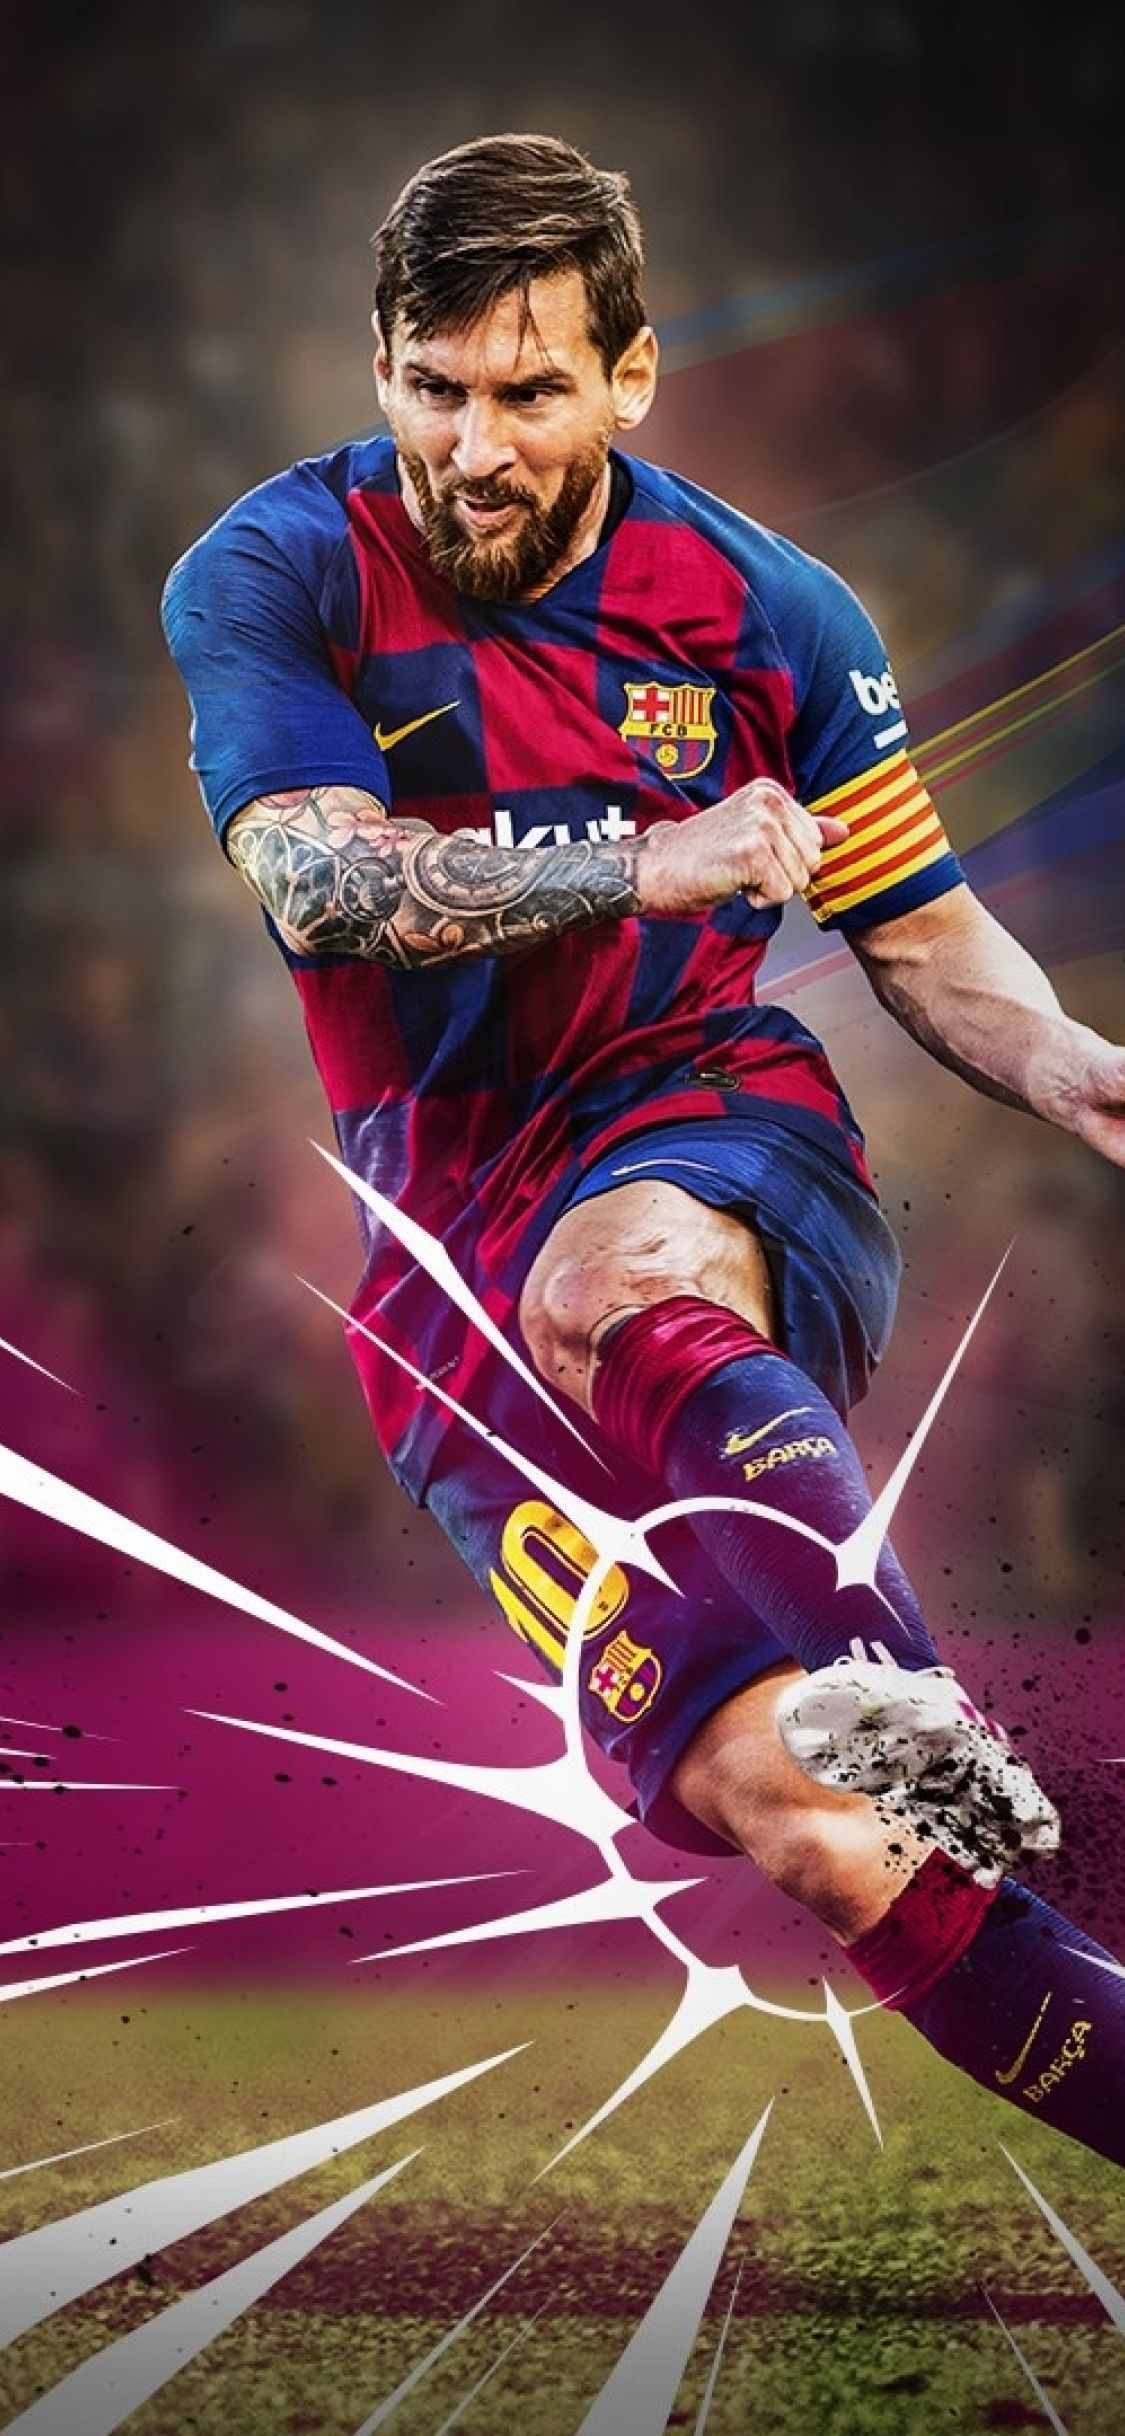 Messi 2020 Iphone Wallpapers Wallpaper Cave